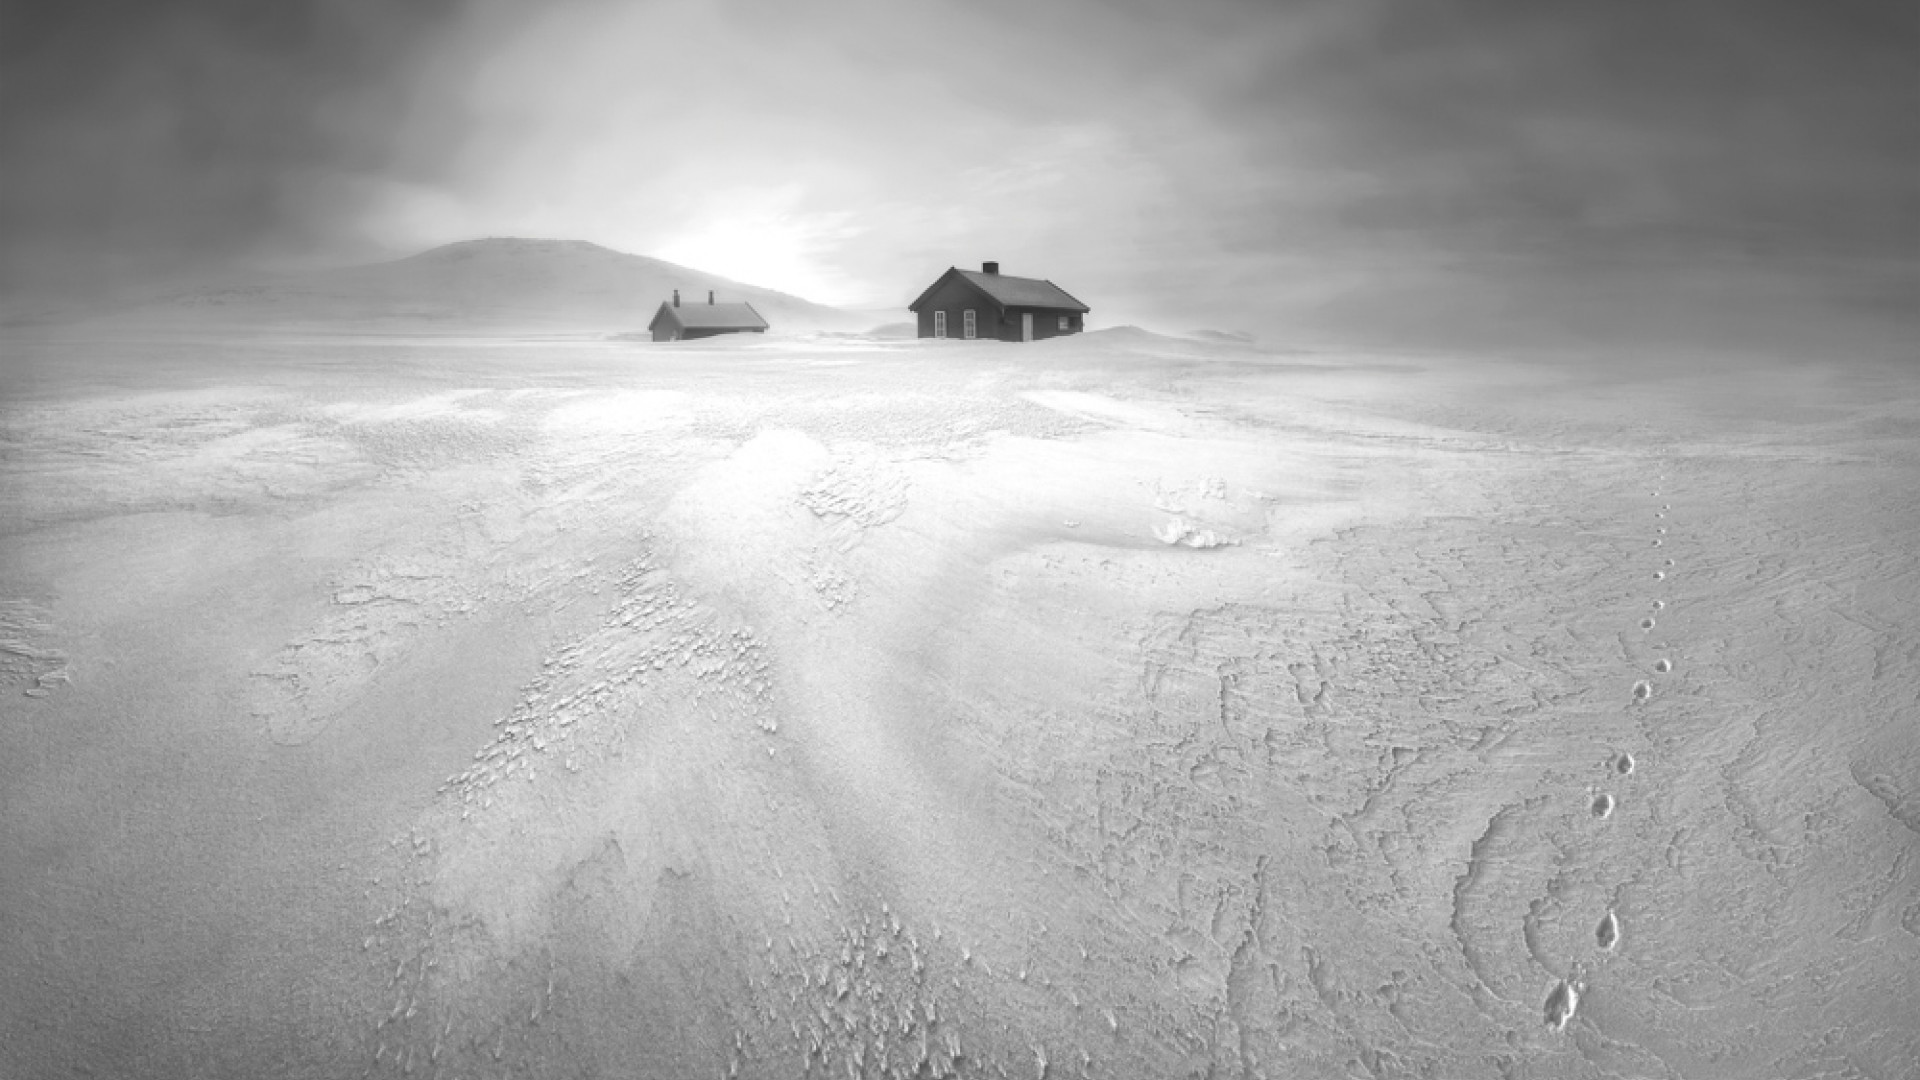 Hunters cabins in the wilderness of Hardangeryidda National Park, northern Norway